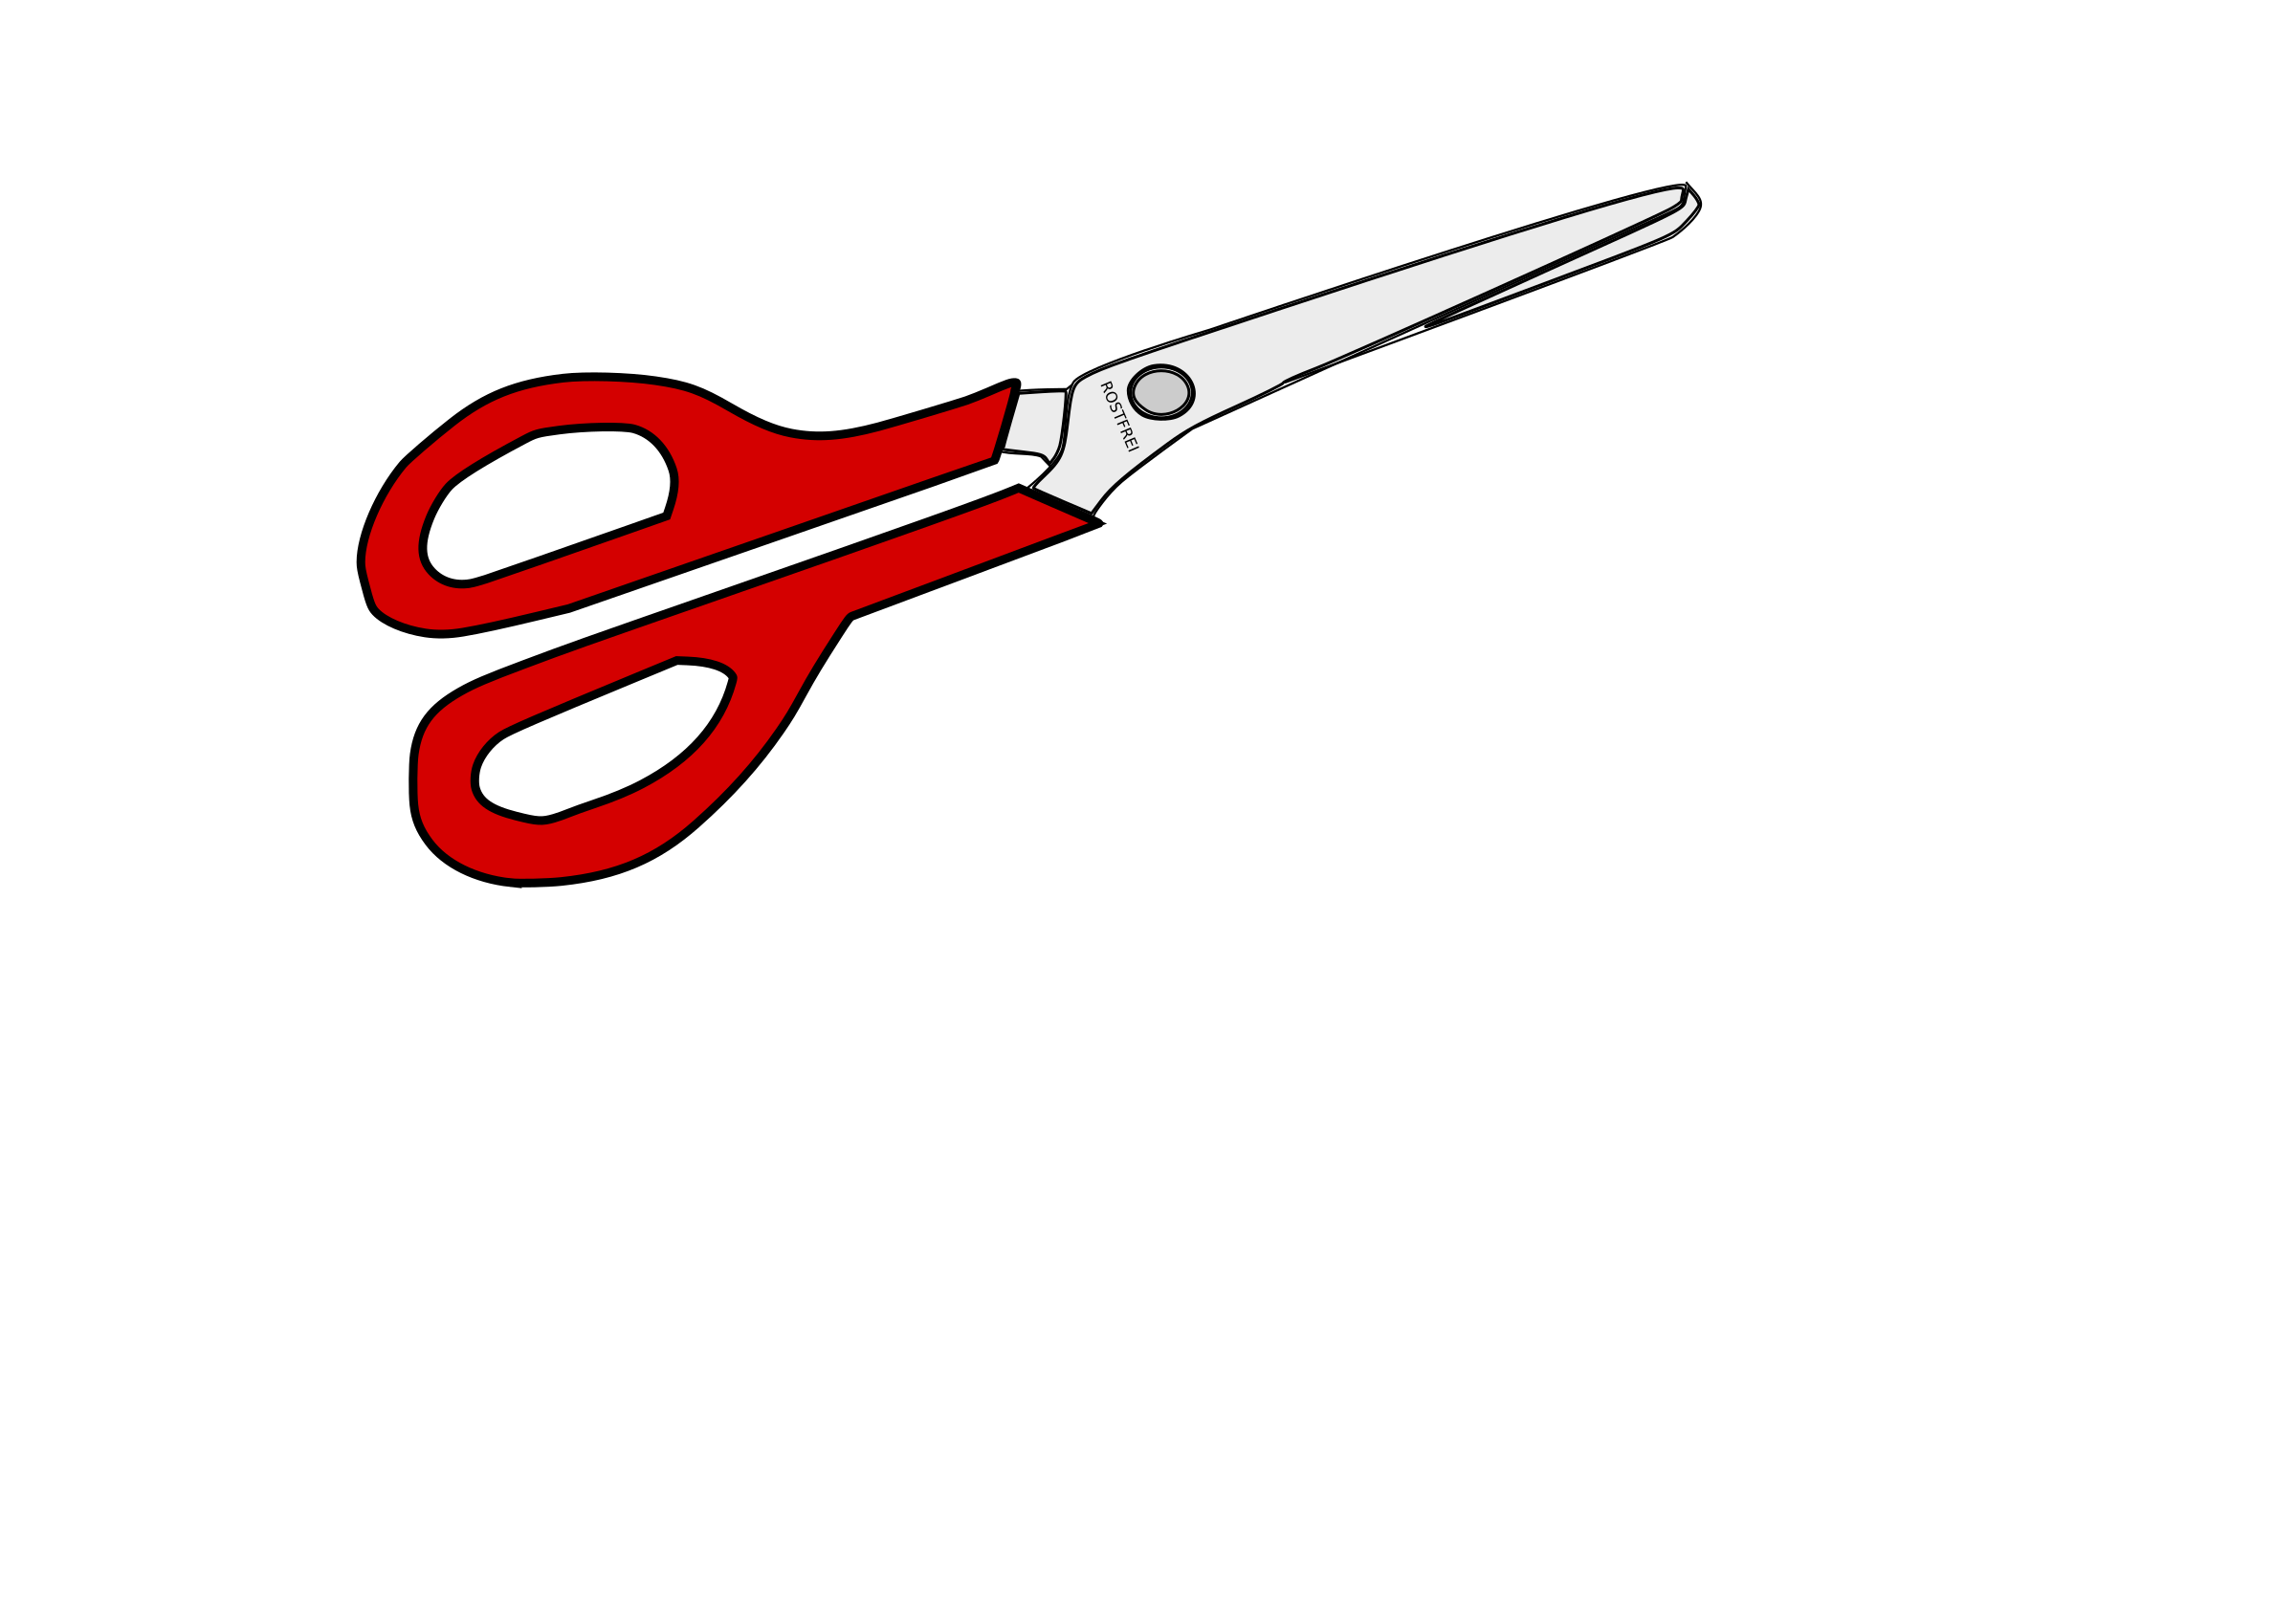 scissors by ambrosisch